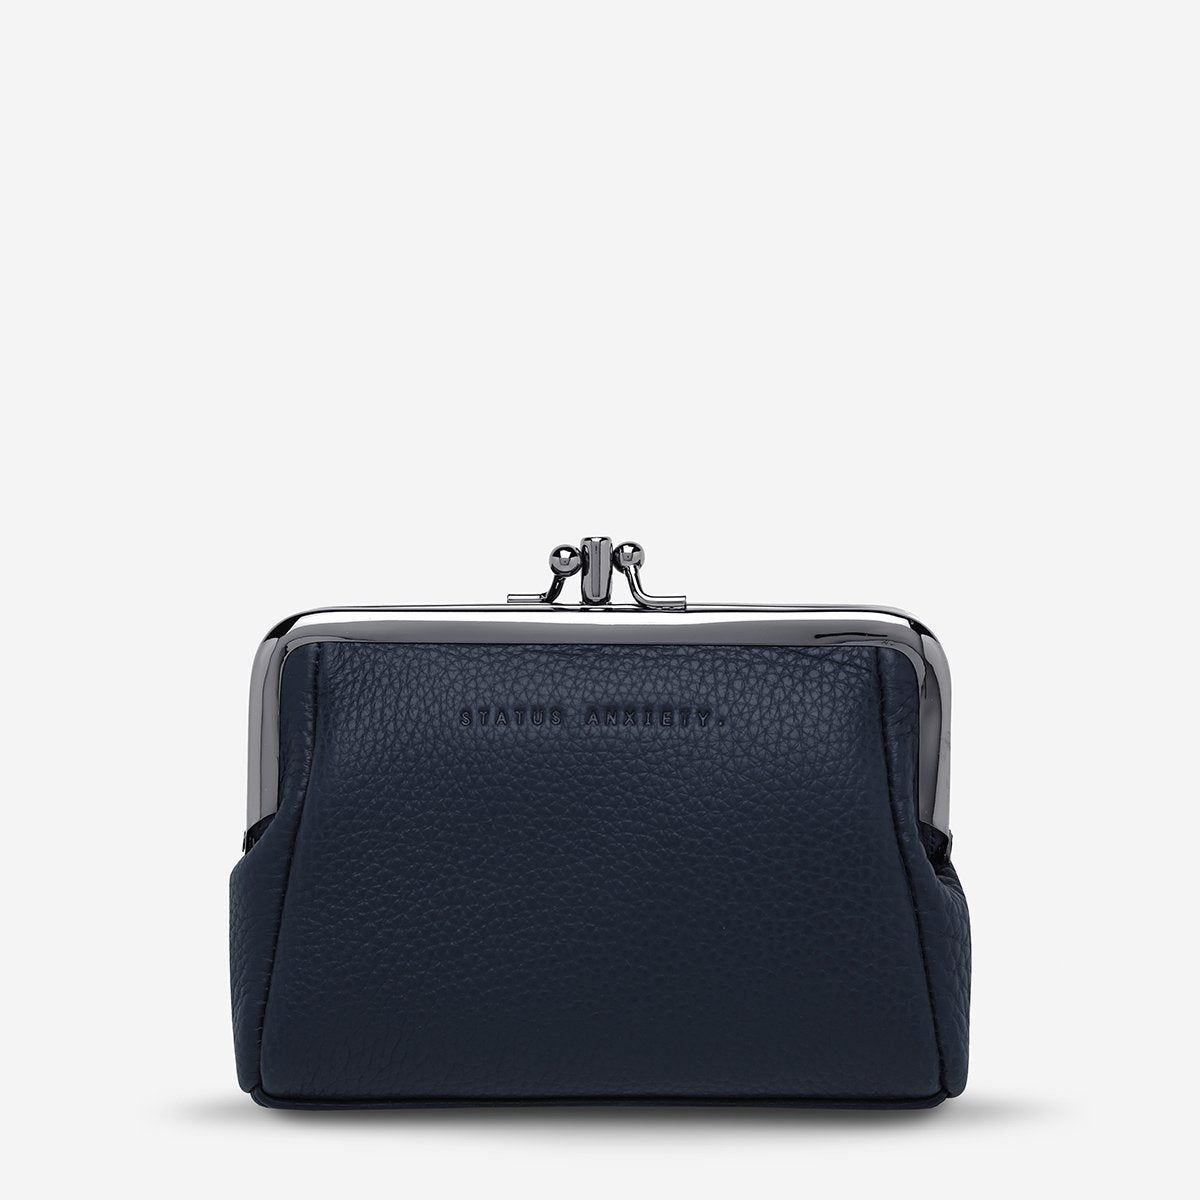 Status Anxiety Volatile Purse - Navy Blue